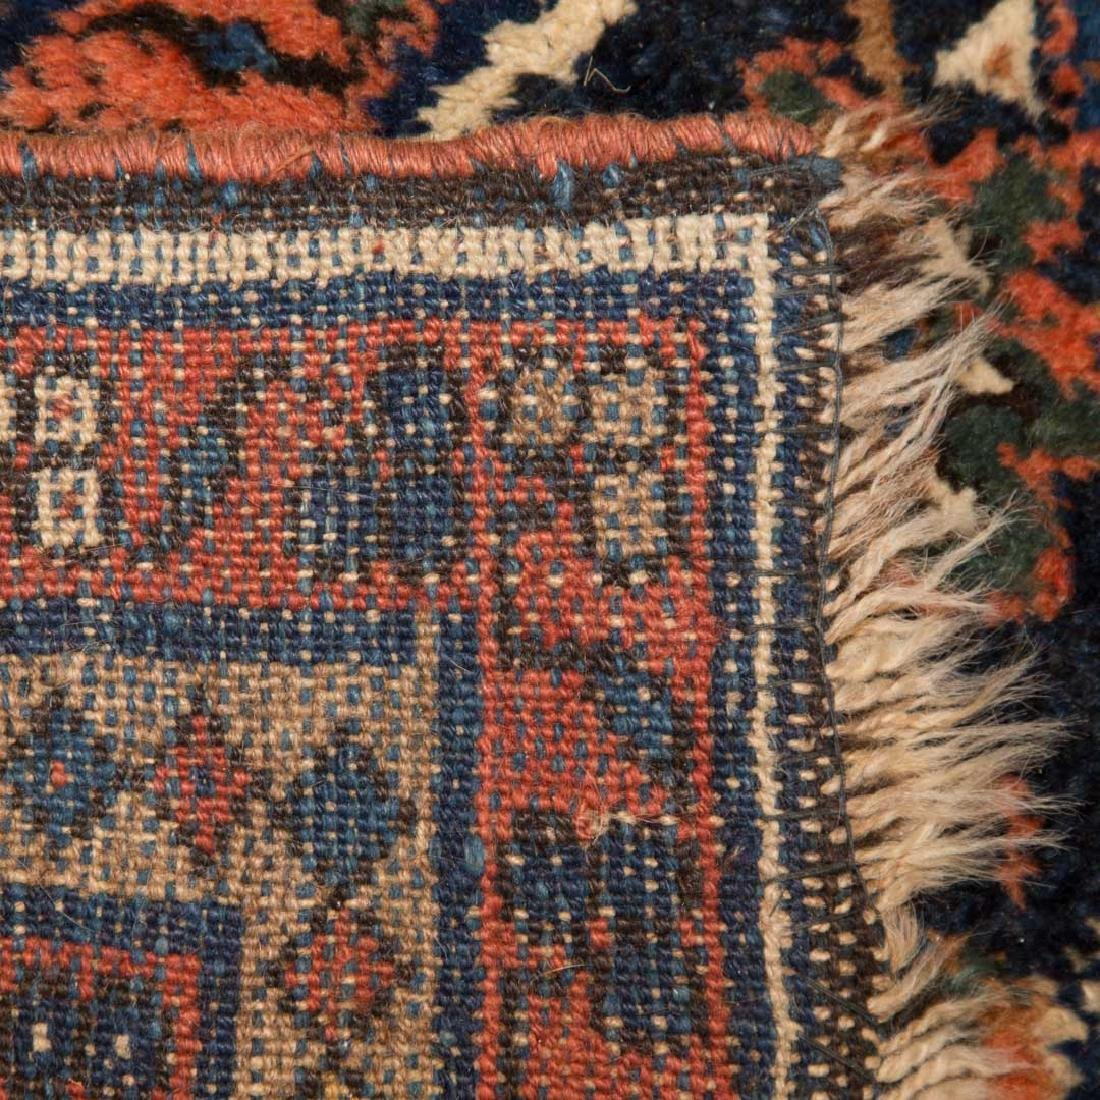 Northwest Persian rug, approx. 3.7 x 7 - 3